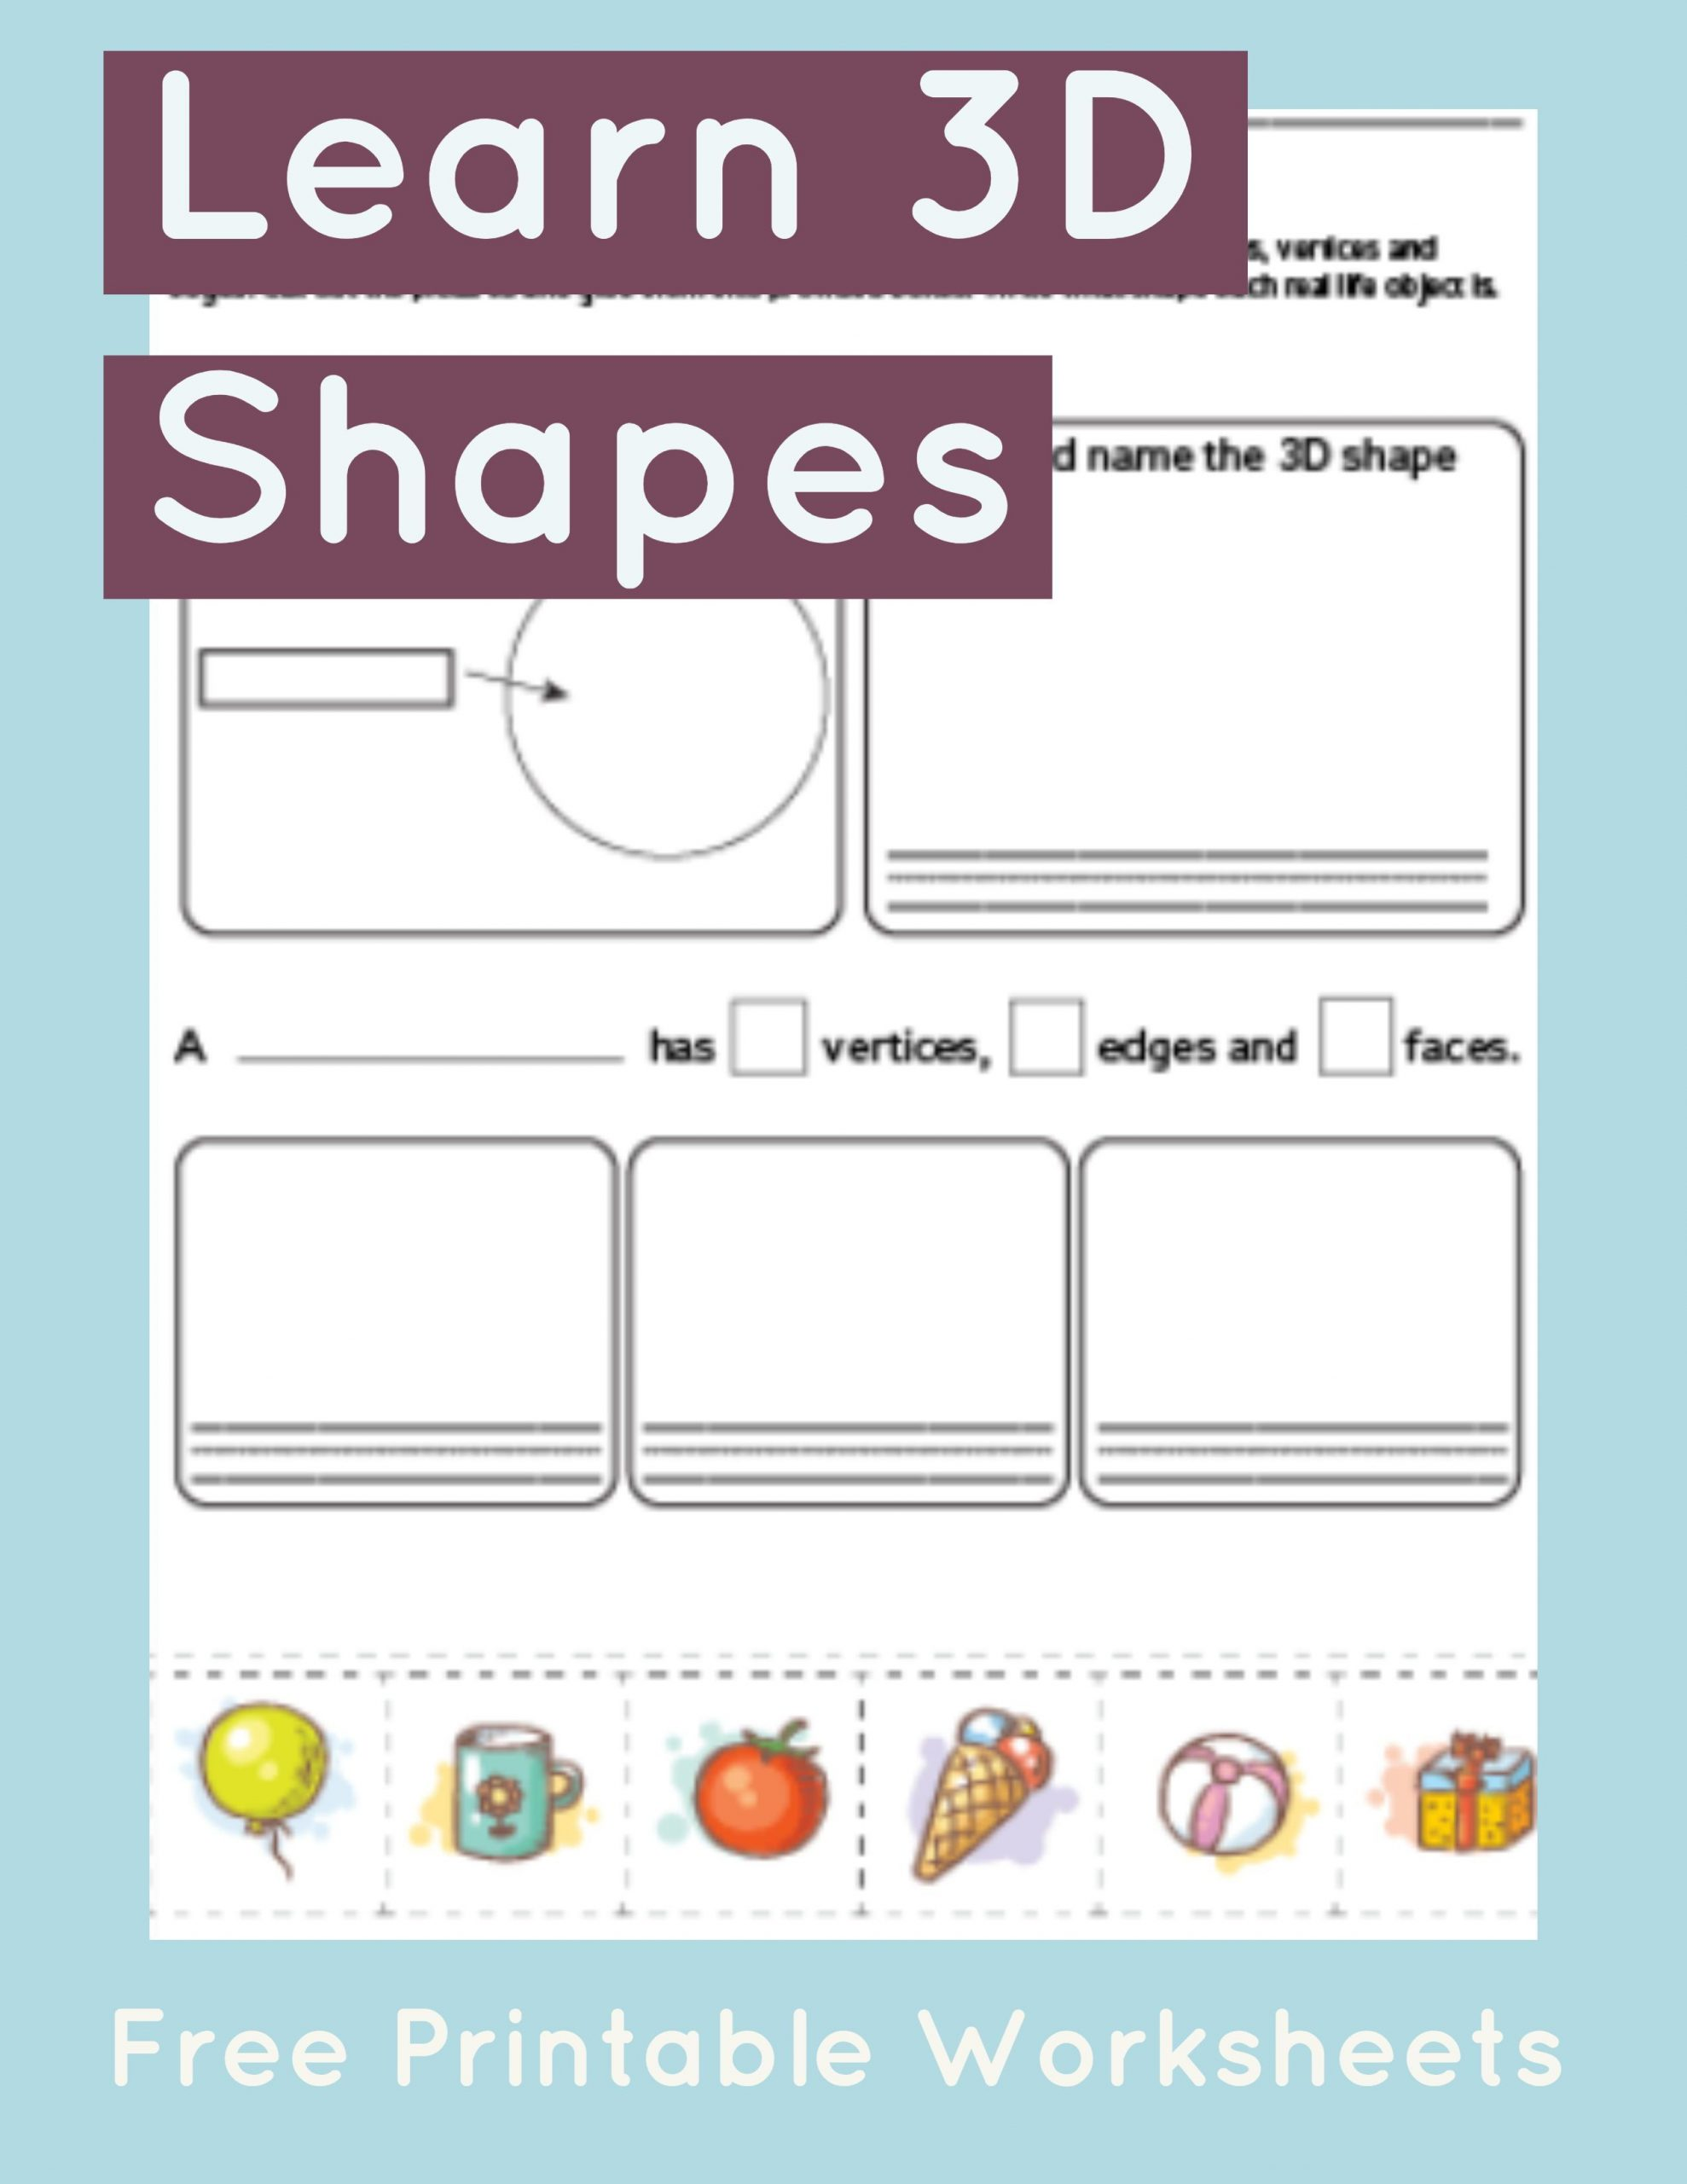 Sphere Worksheet For Kindergarten